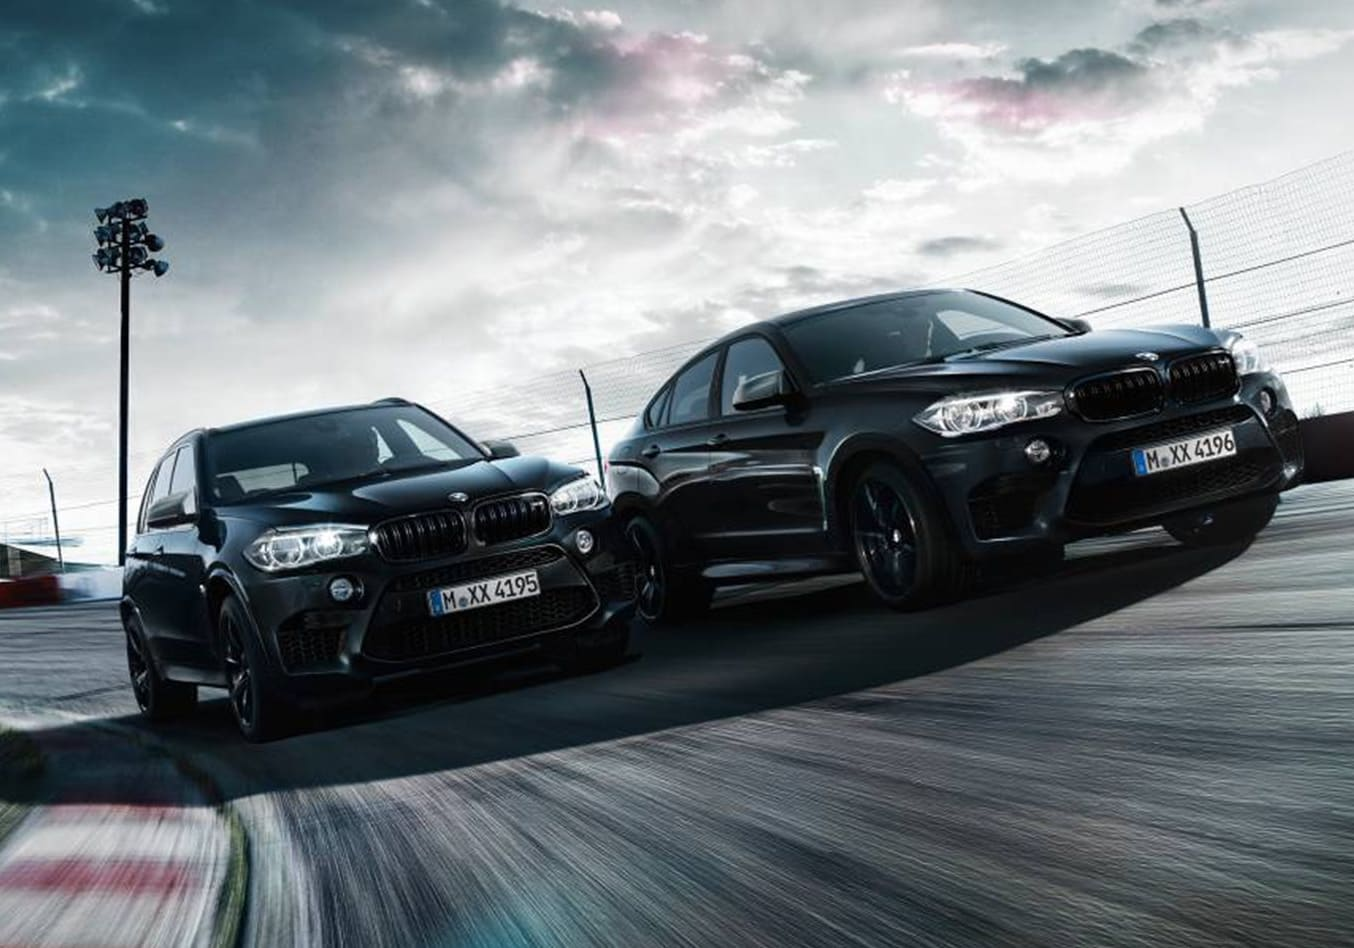 BMW X5 M and X6 M Black Fire Editions